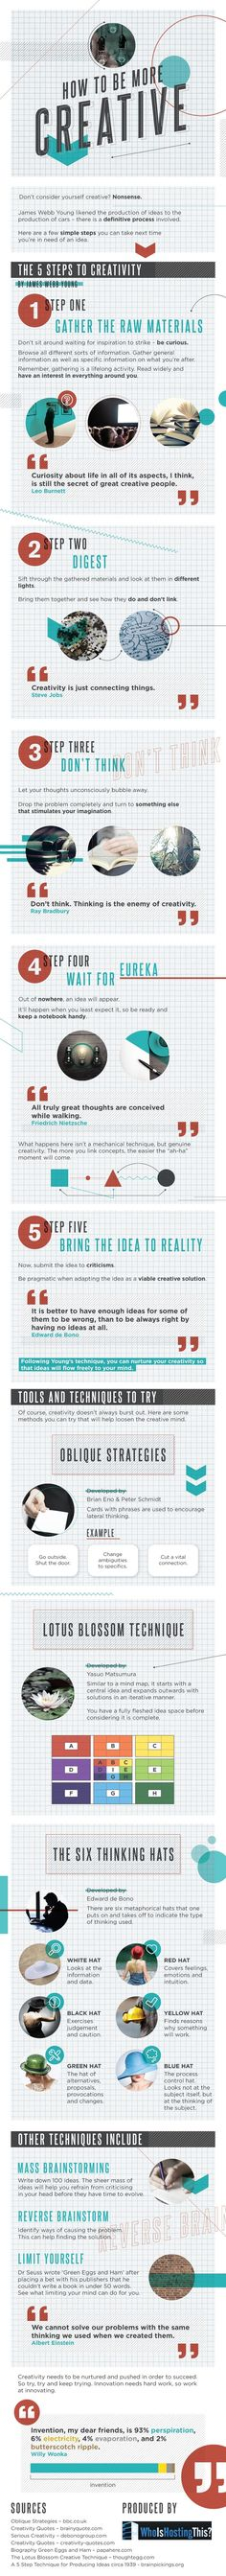 How To Be More Creative [#infographic]